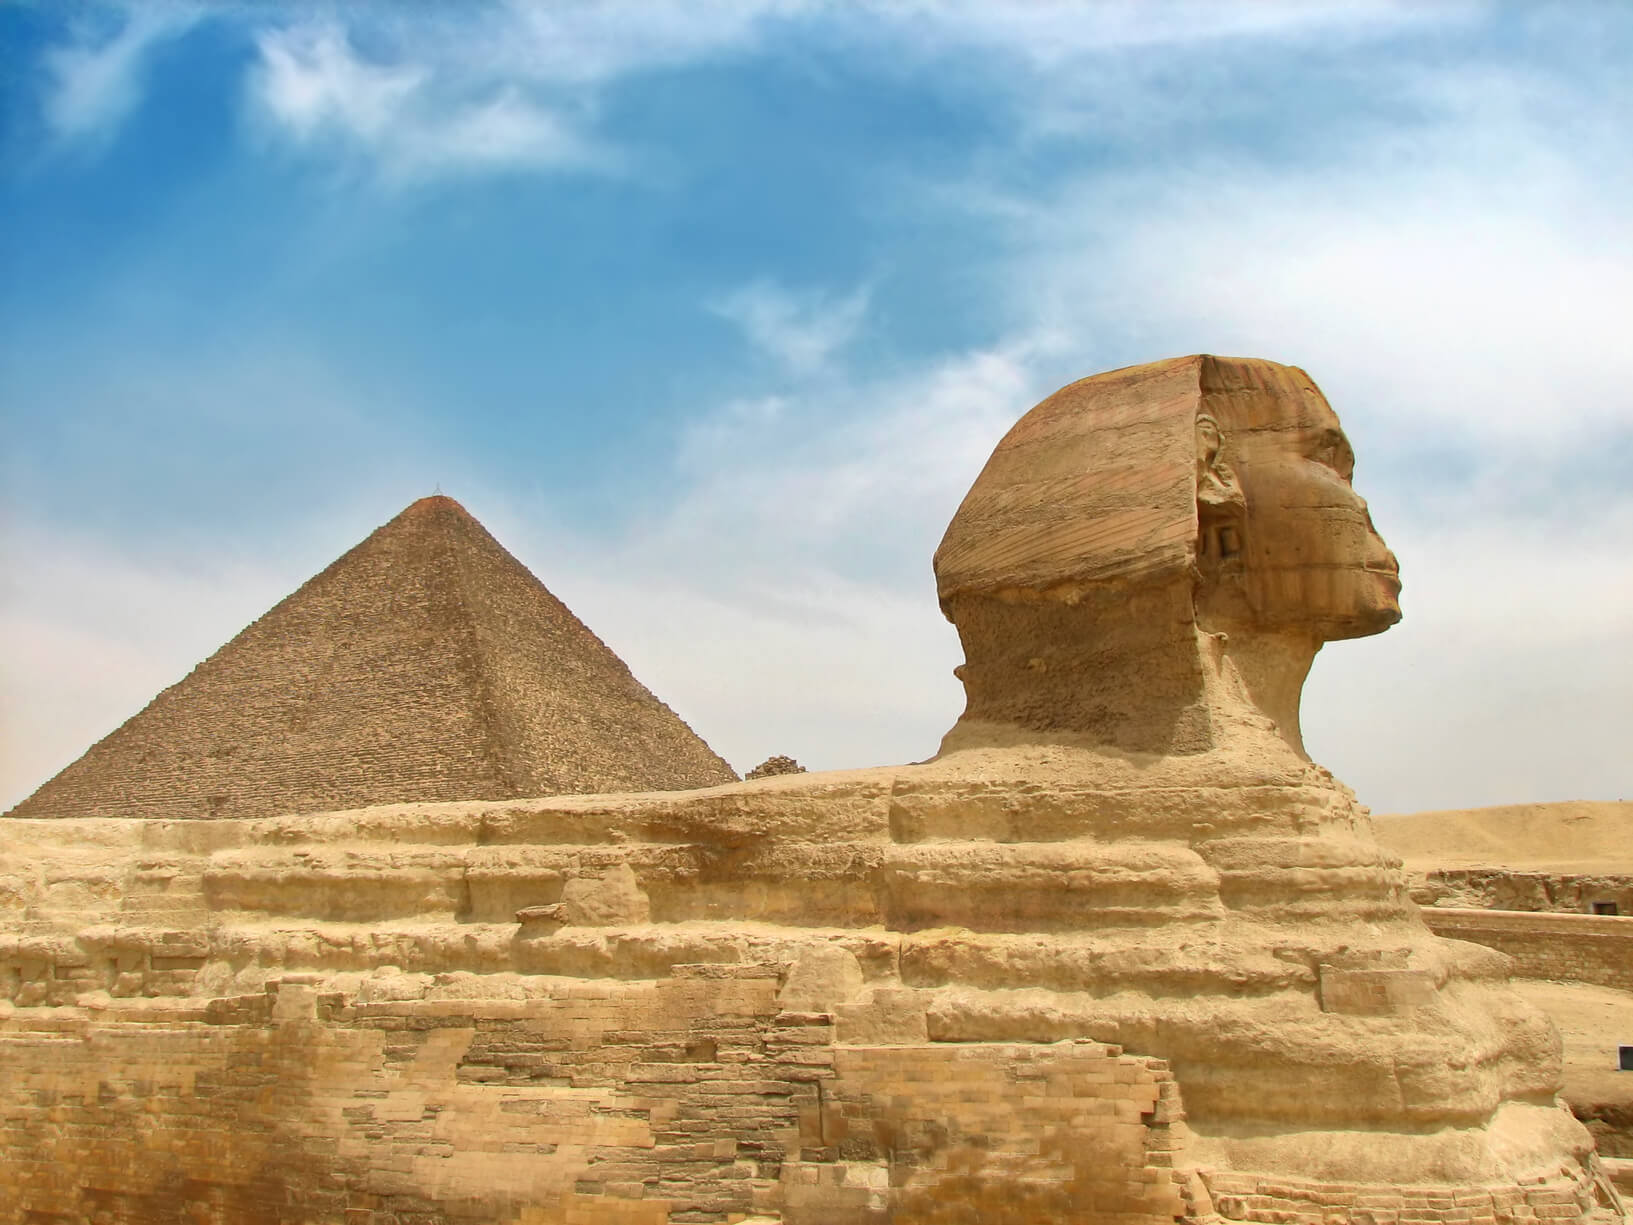 Singapore to Cairo, Egypt for only $399 USD roundtrip